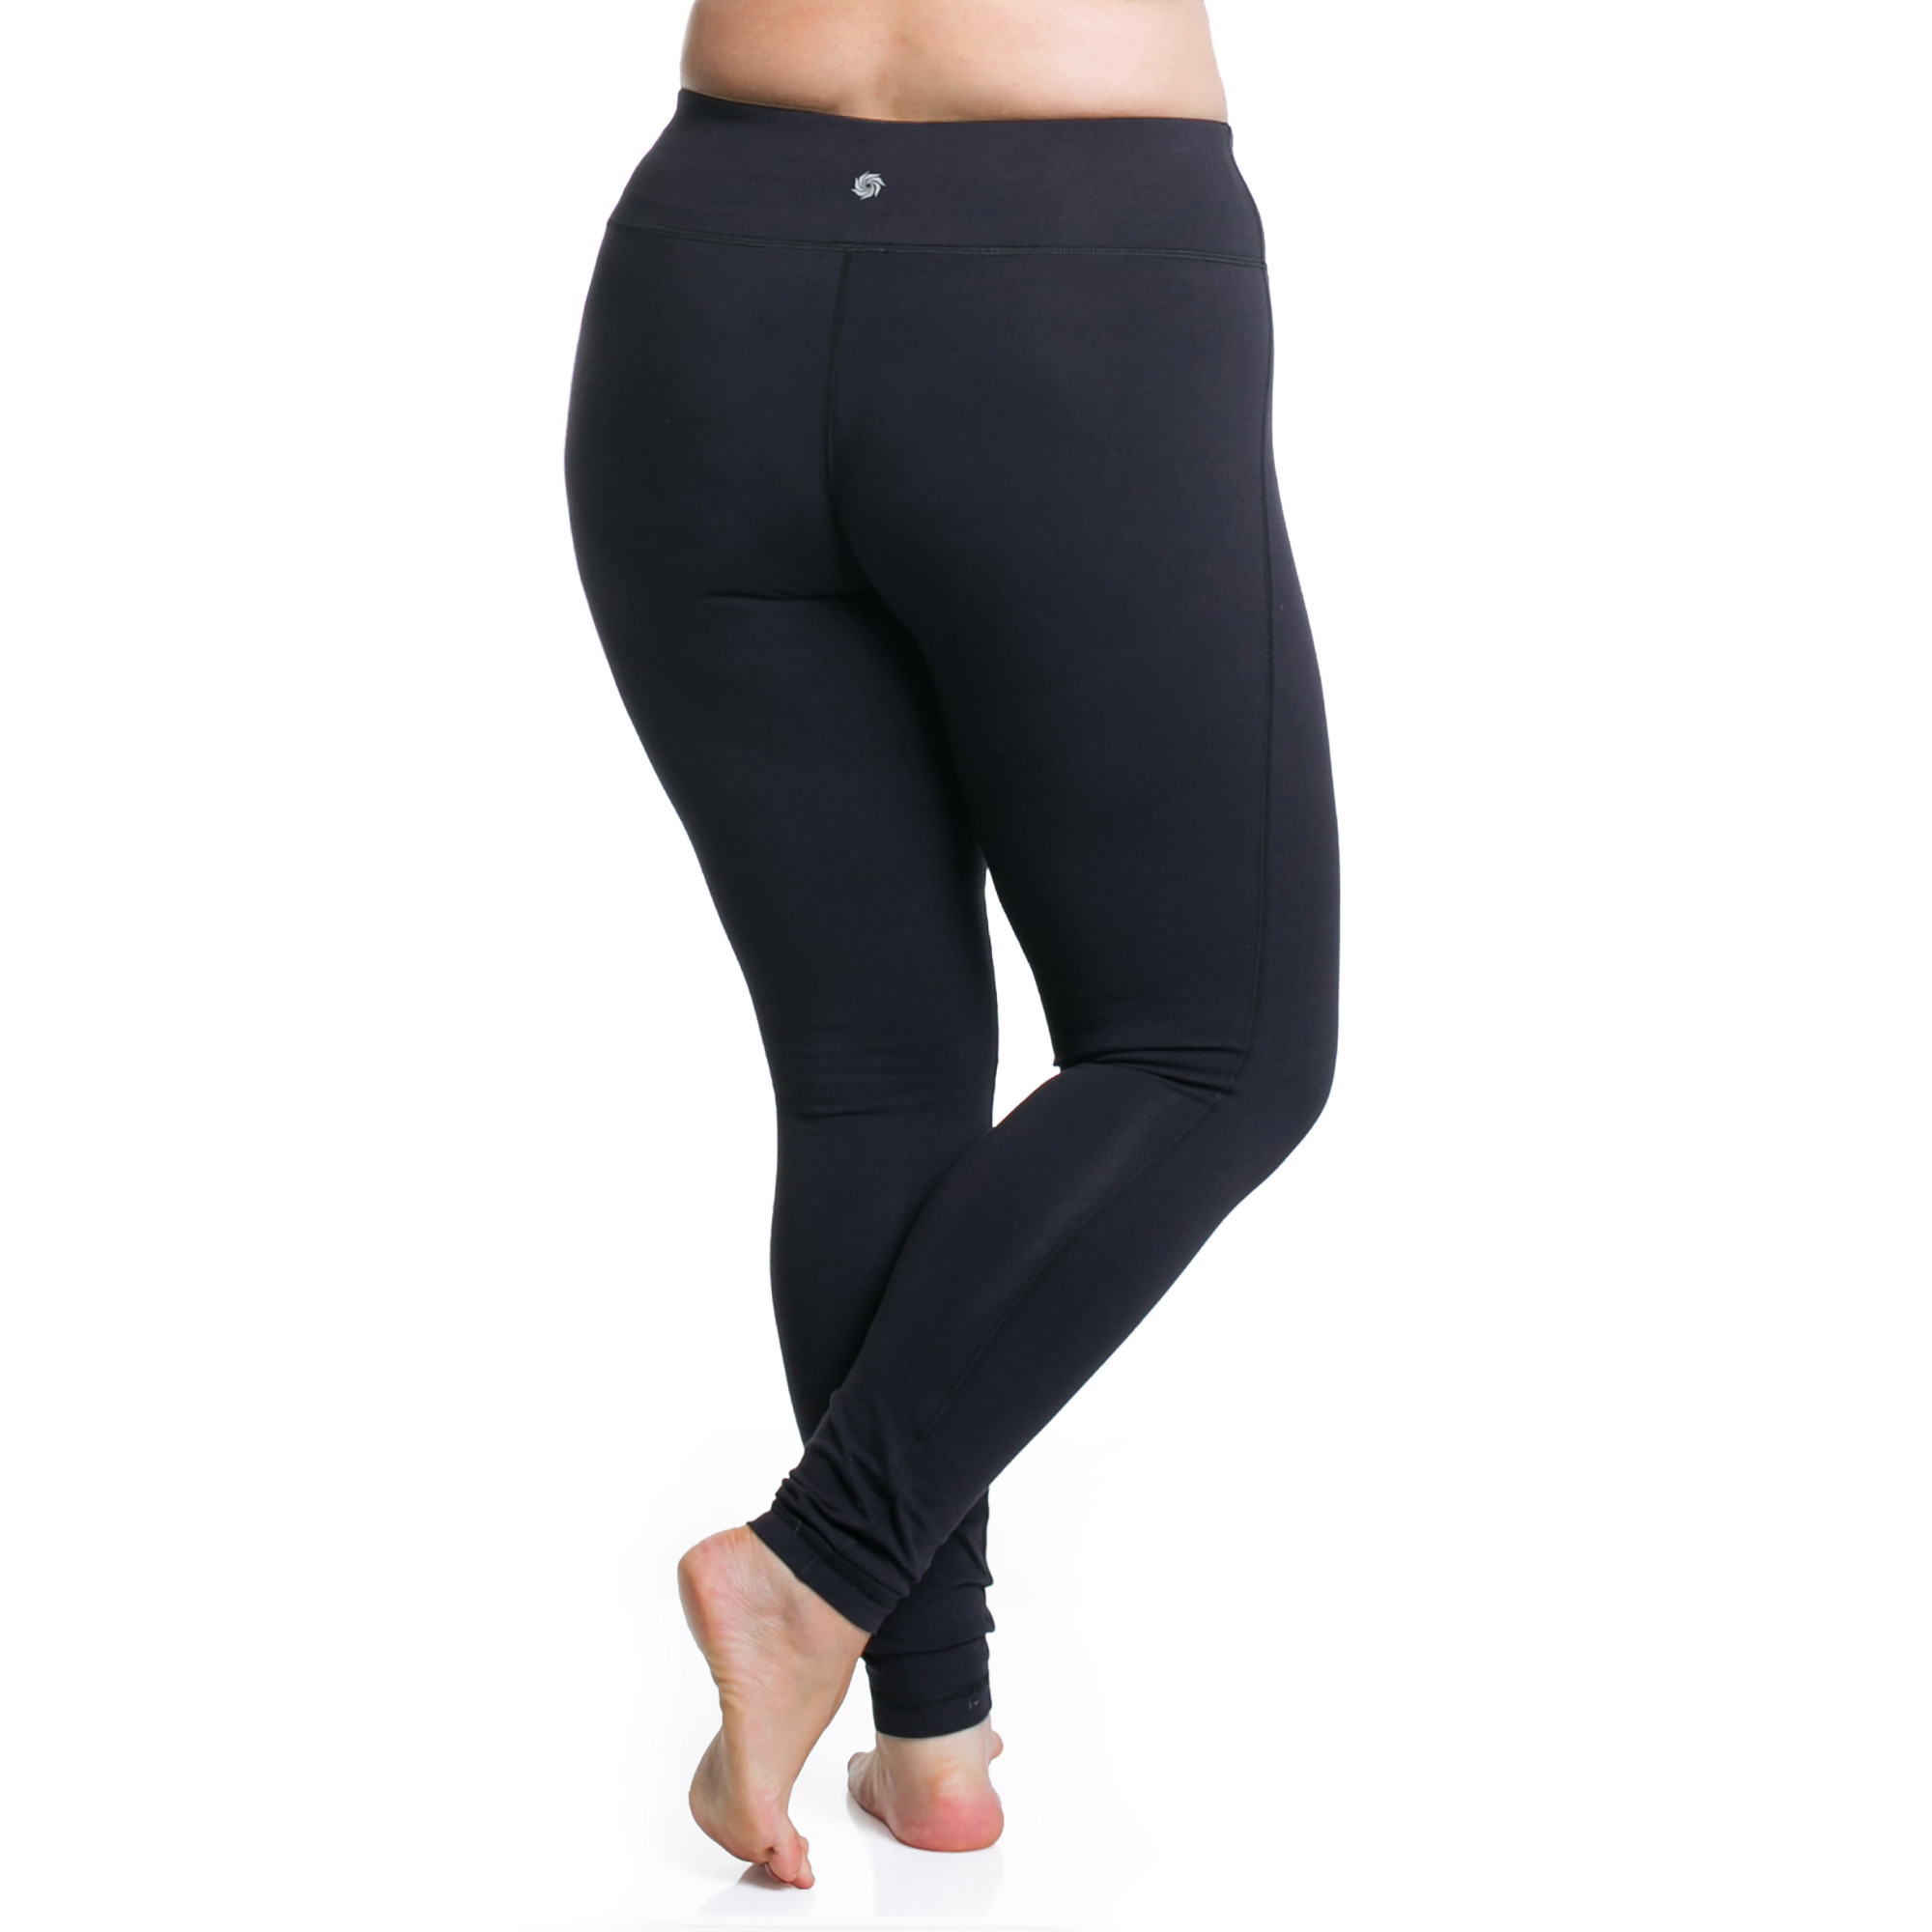 Top Plus Size Compression Leggings | Style with Curves